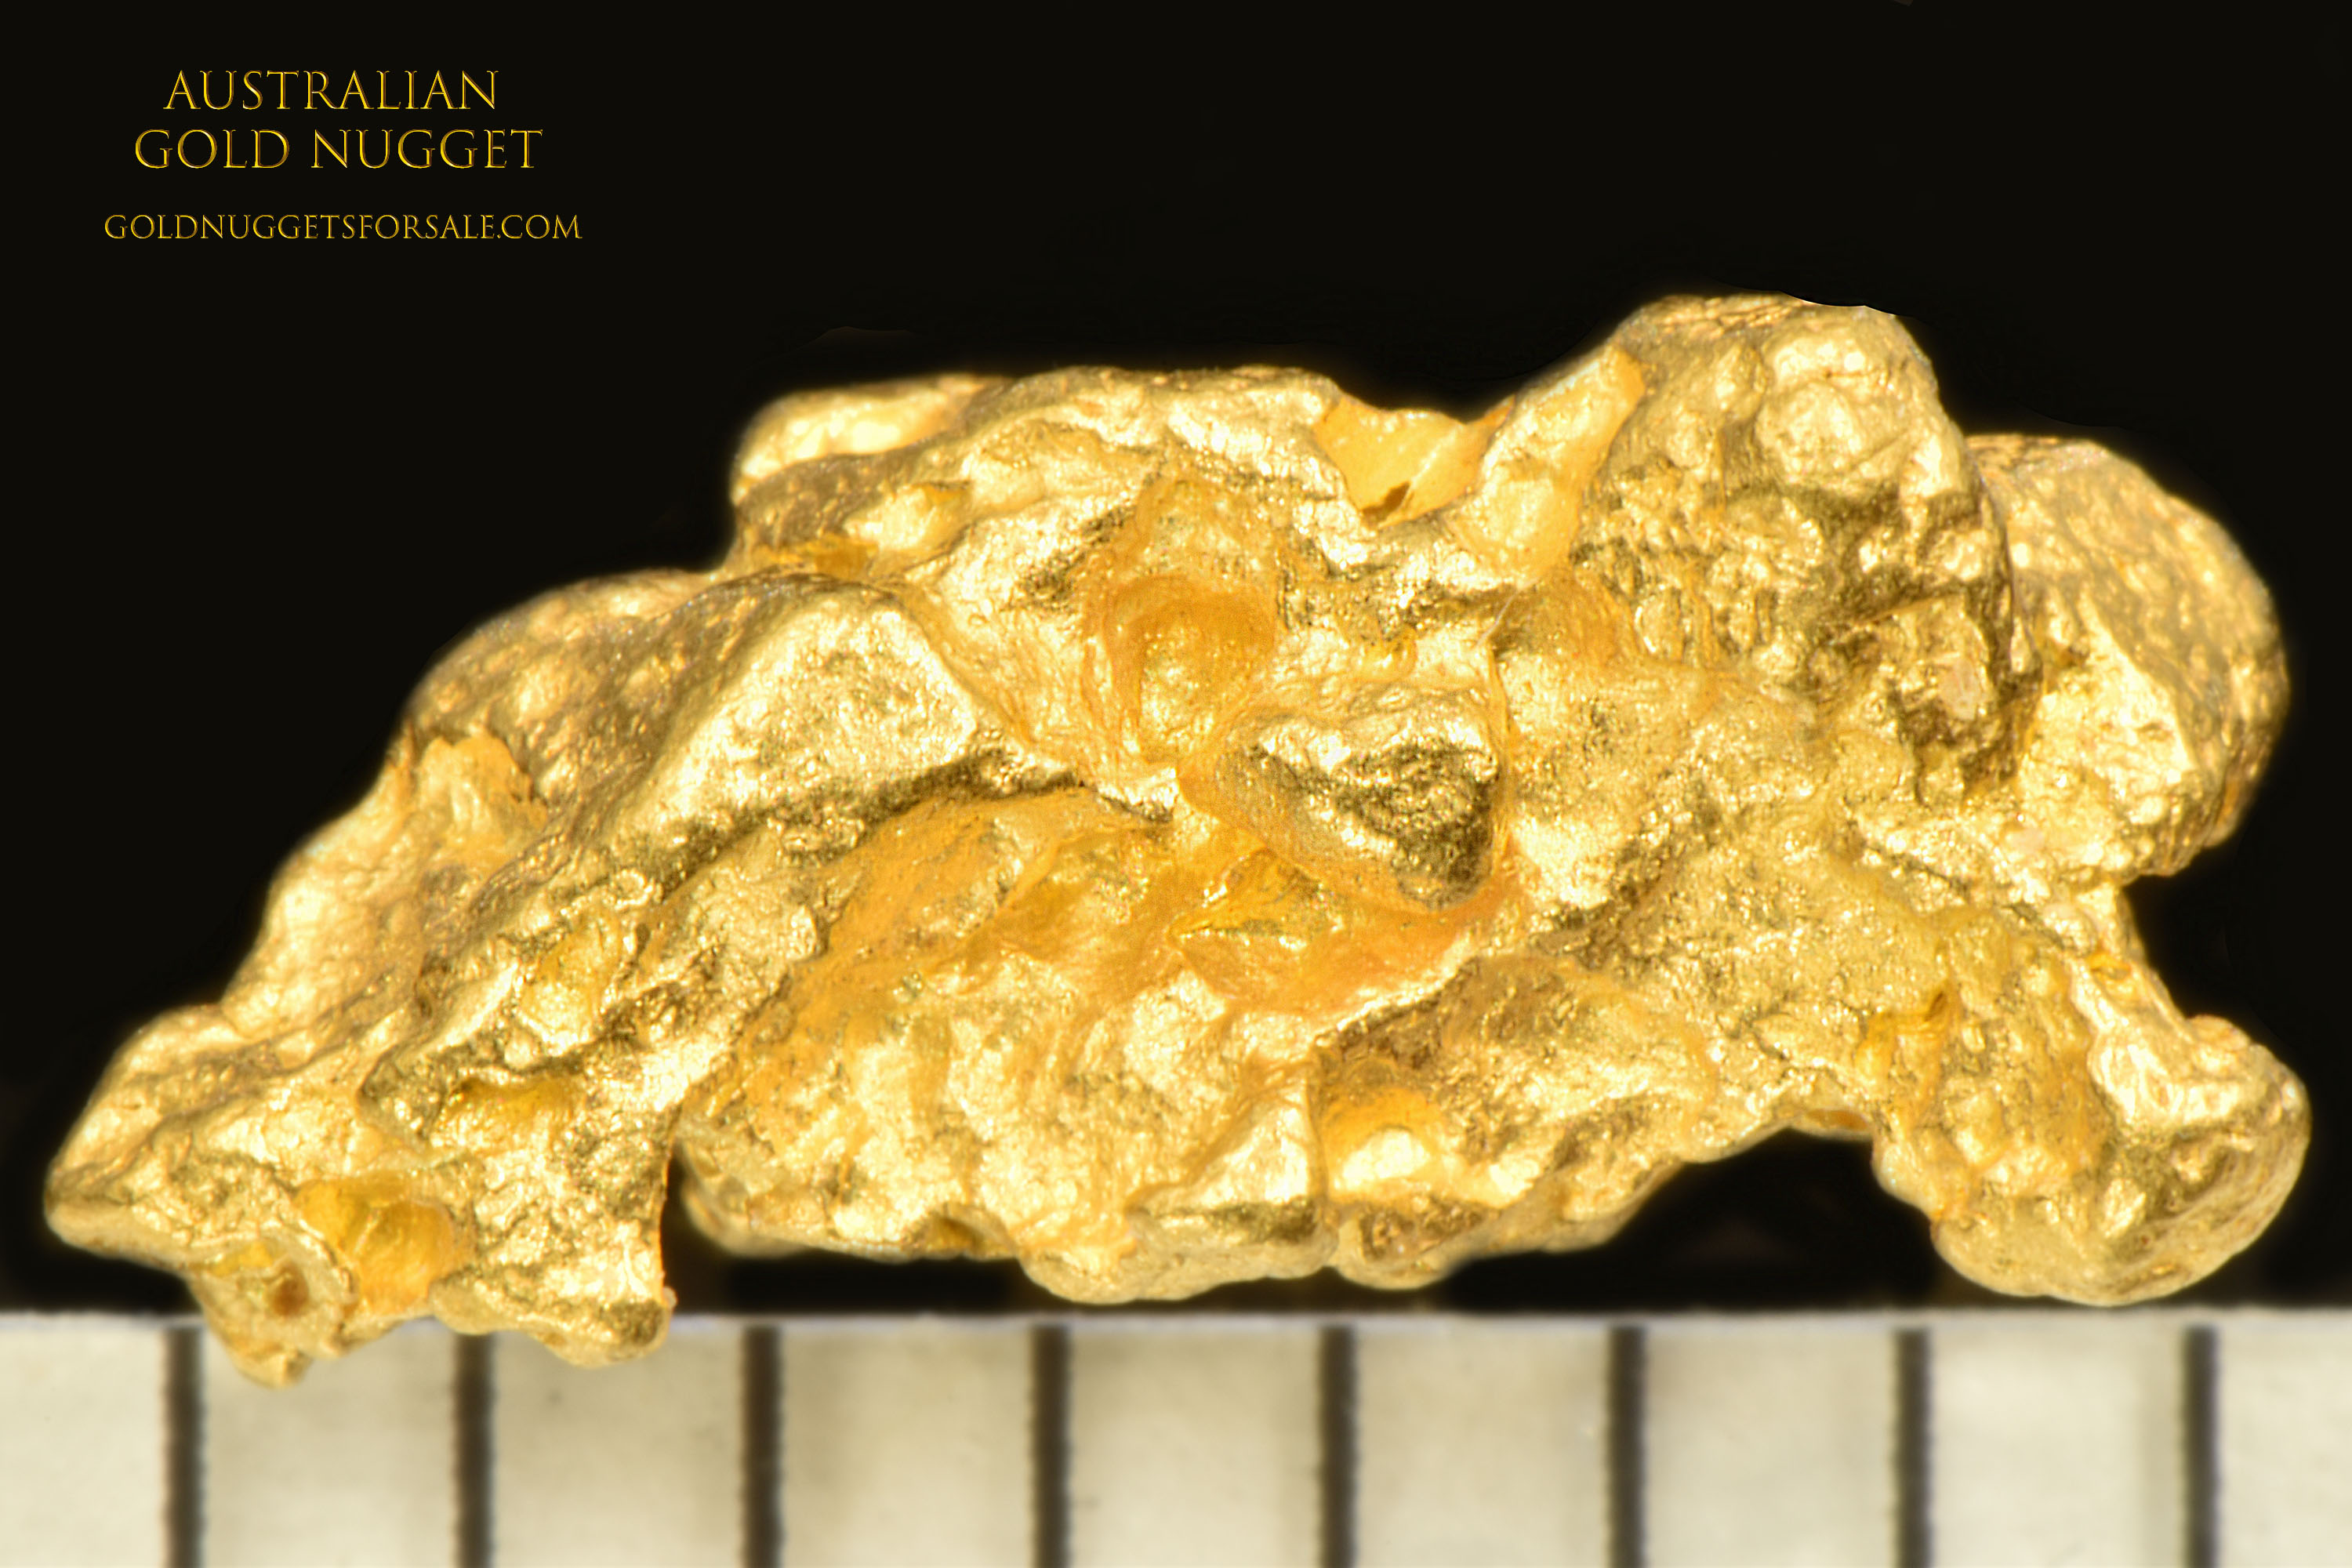 Faceted and Oblong - Jewelry/Investment Grade Gold Nugget